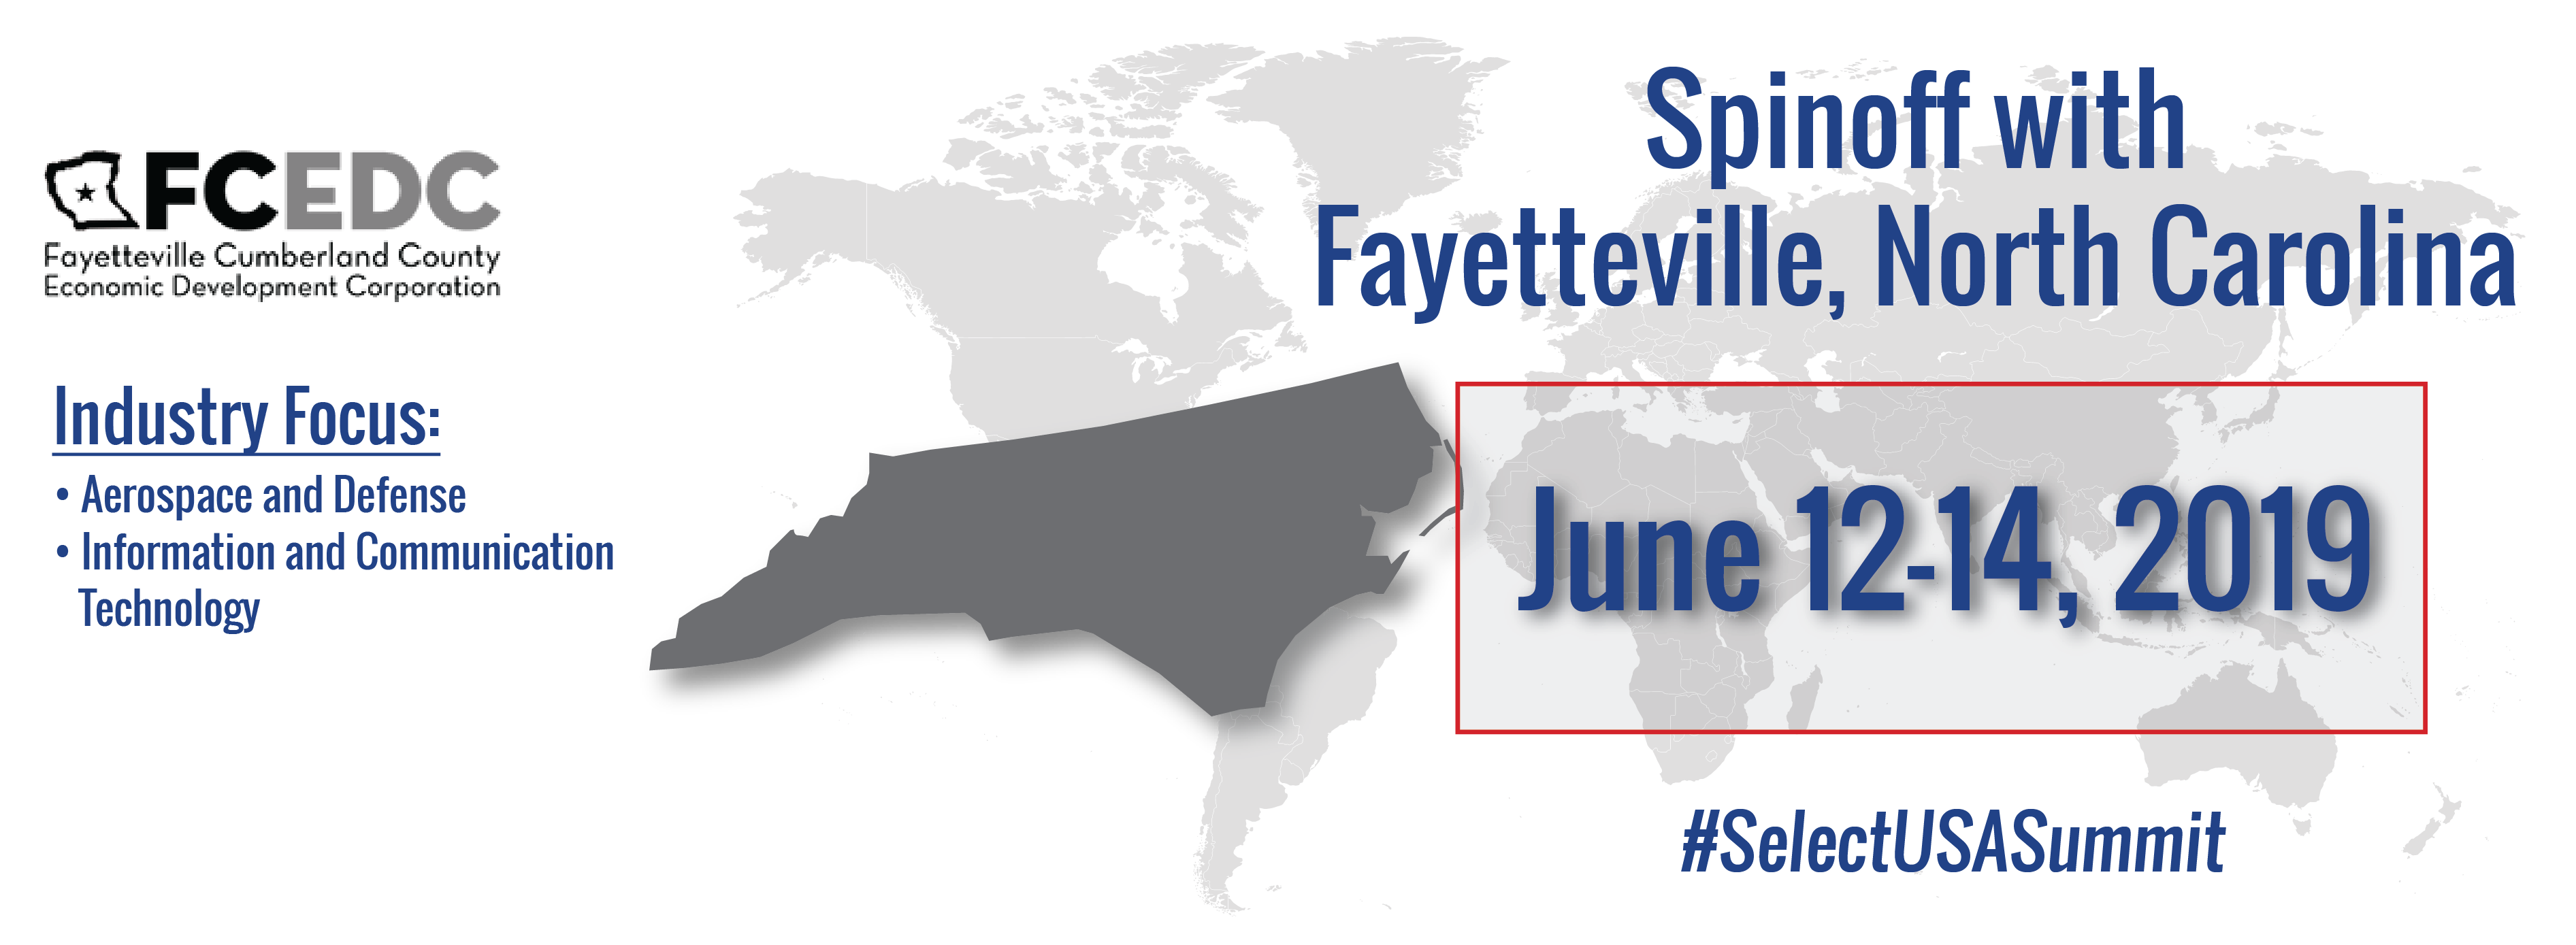 Spinoff Event Graphic - Fayetteville, North Carolina